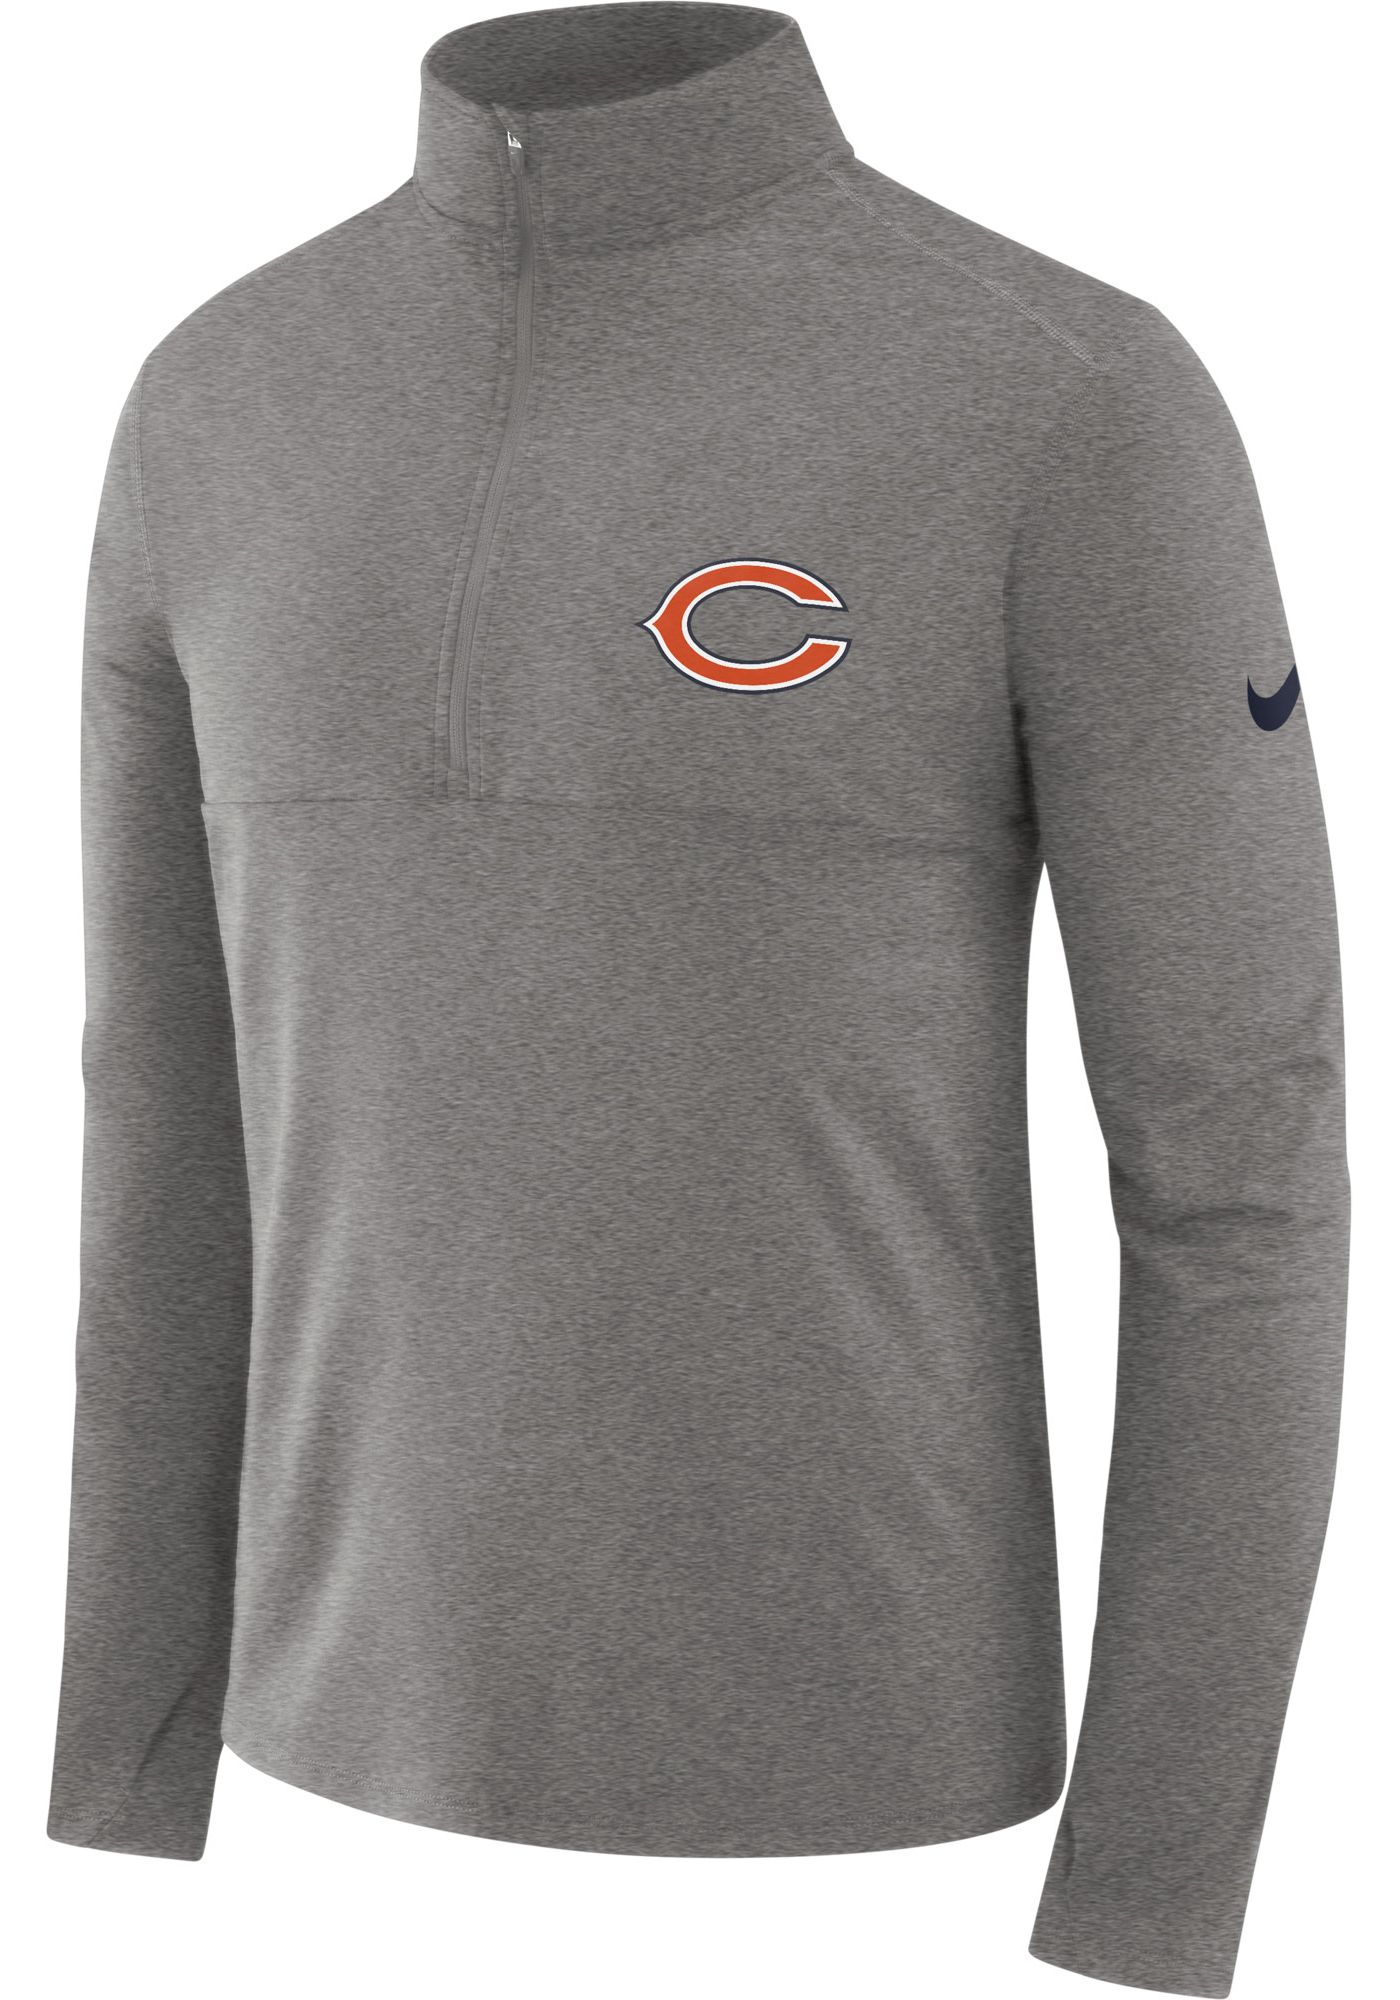 Nike Men's Chicago Bears Core Performance Grey Half-Zip Pullover Top